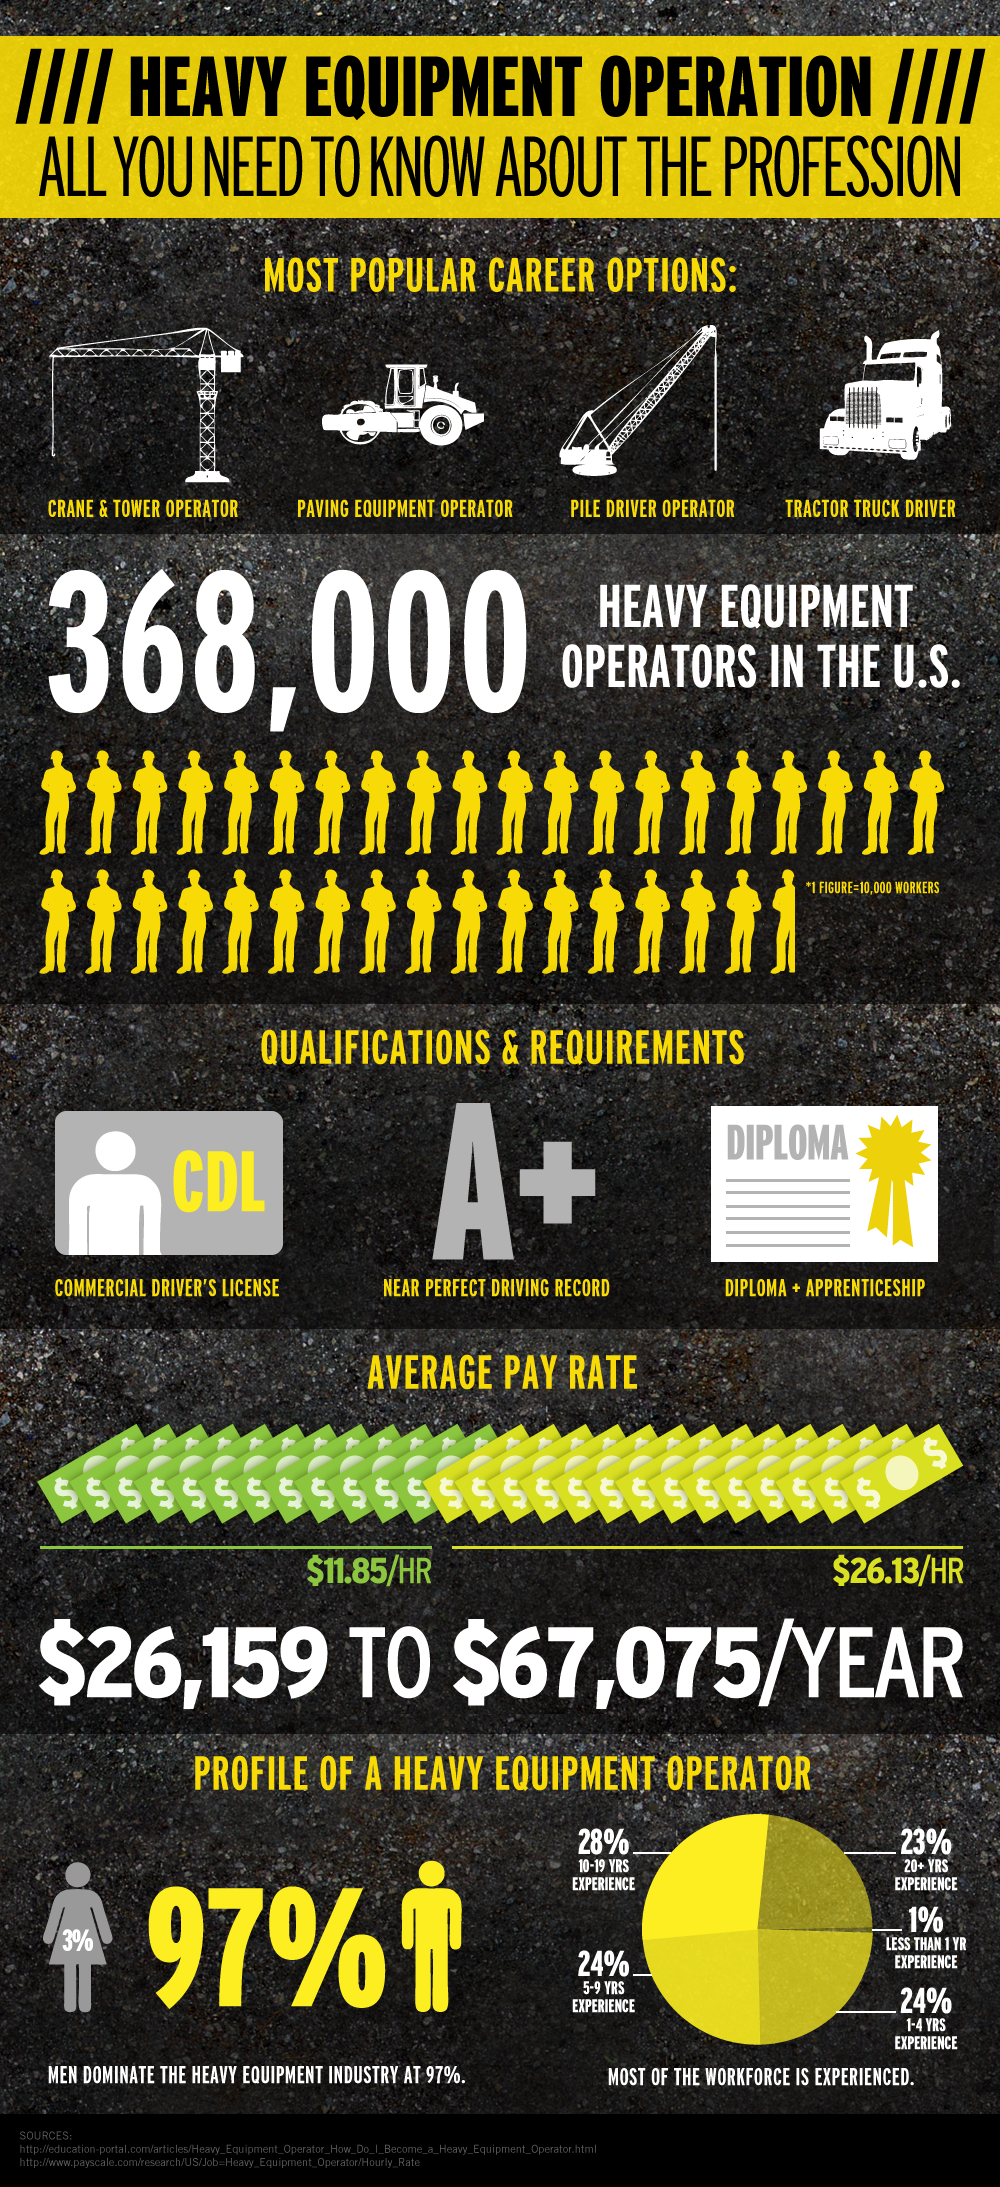 Heavy Equipment Operation Infographic. For Levi. I say